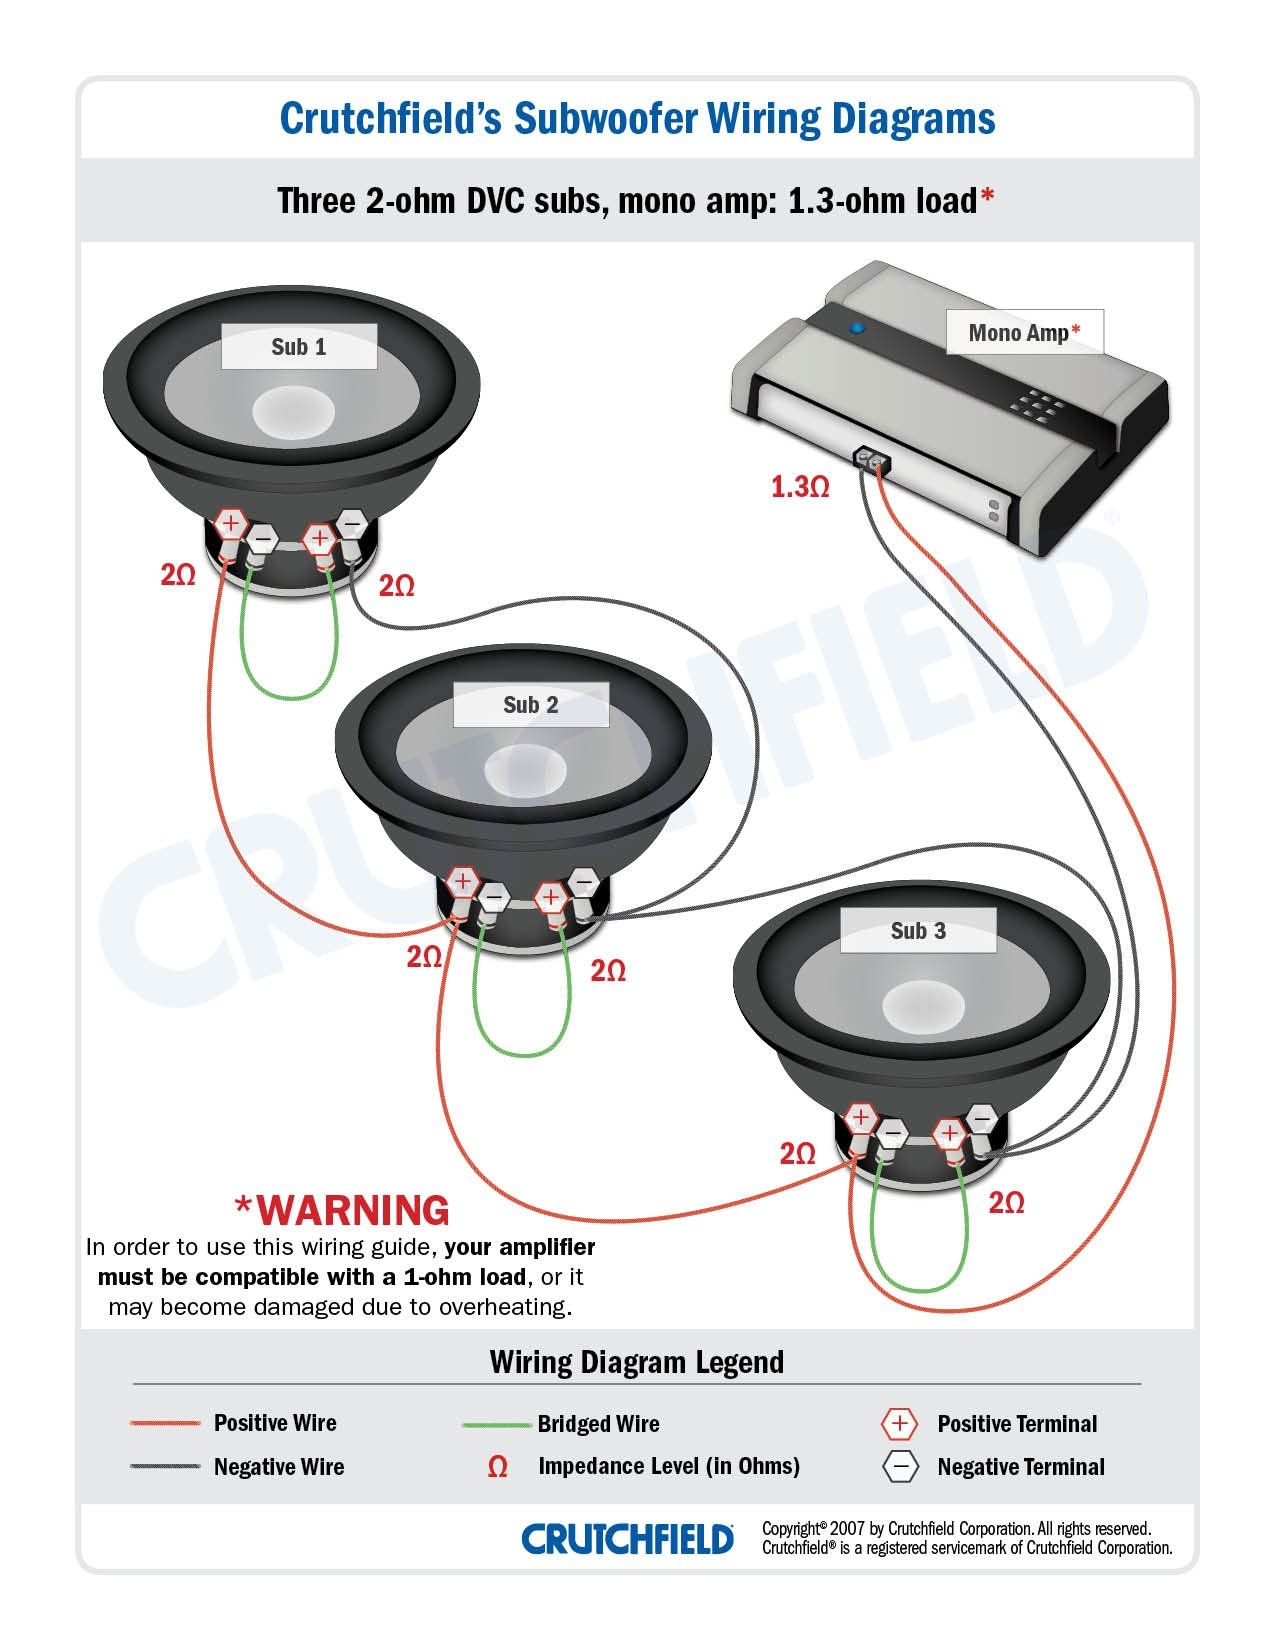 3 DVC 2 ohm mono low imp how to match subwoofers and amplifiers boston subsat 6 wiring diagram at pacquiaovsvargaslive.co